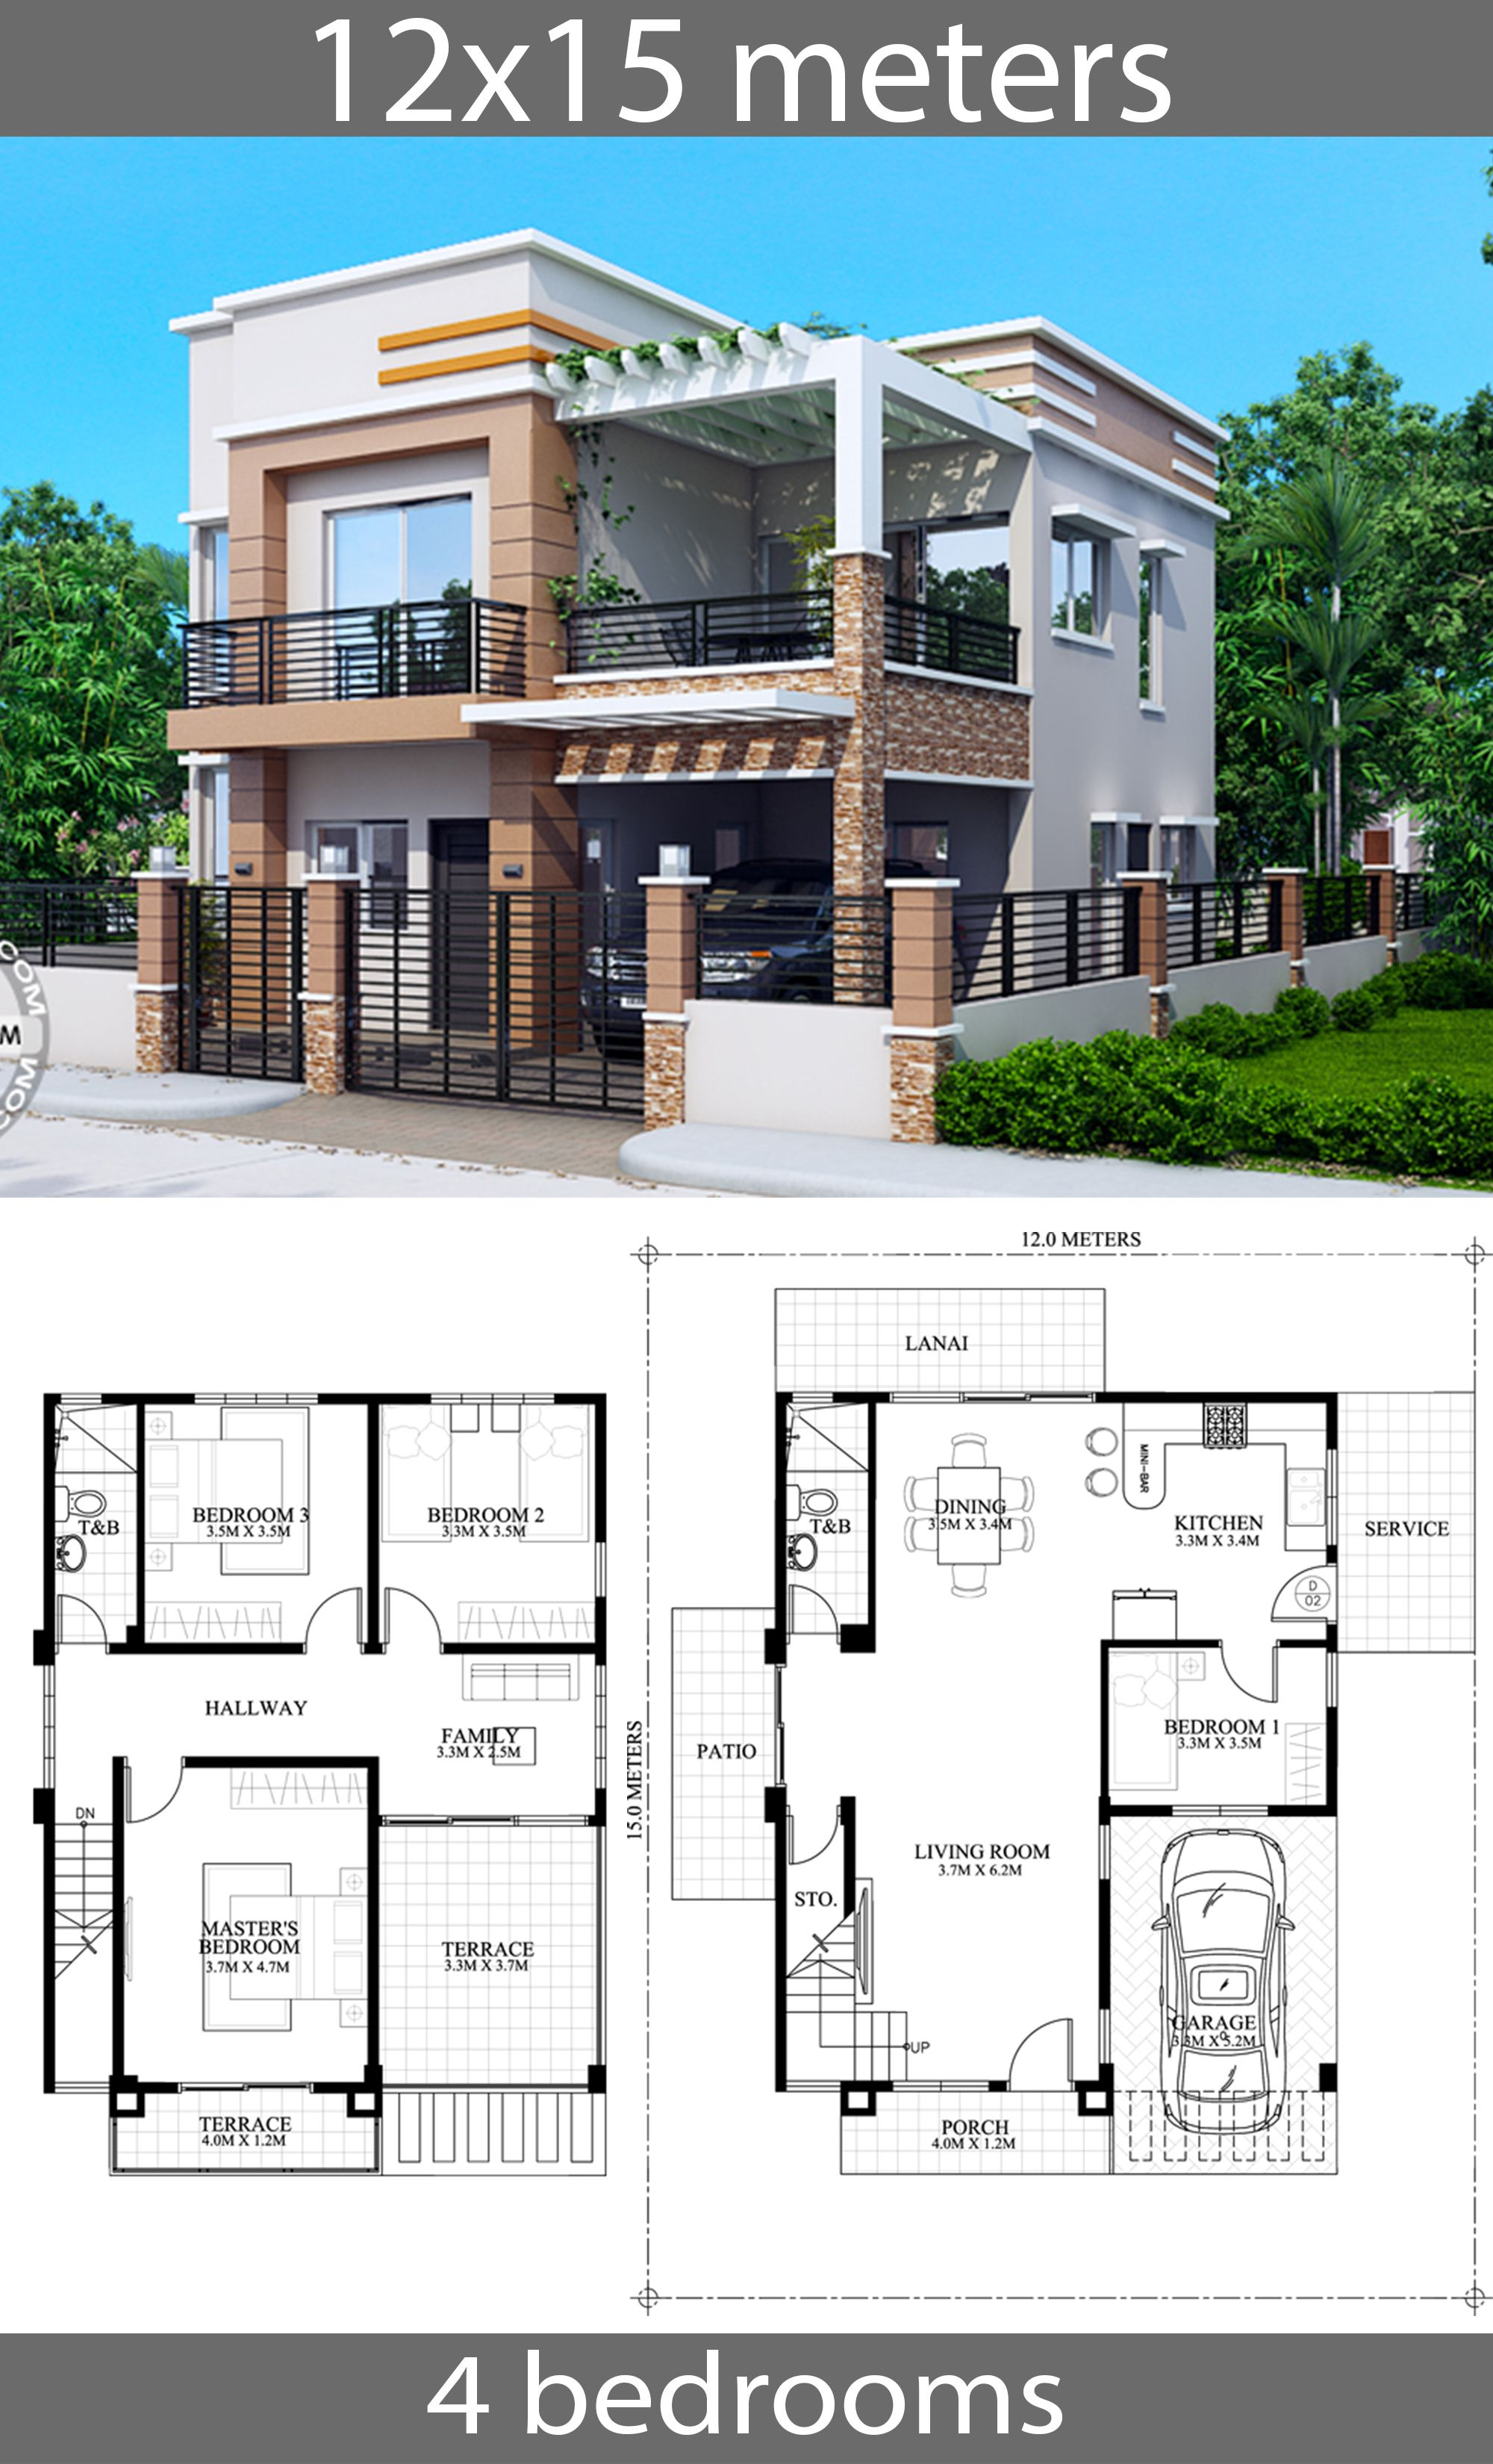 Pin By Yulia Djj On House Plans Idea House Construction Plan Family House Plans Model House Plan